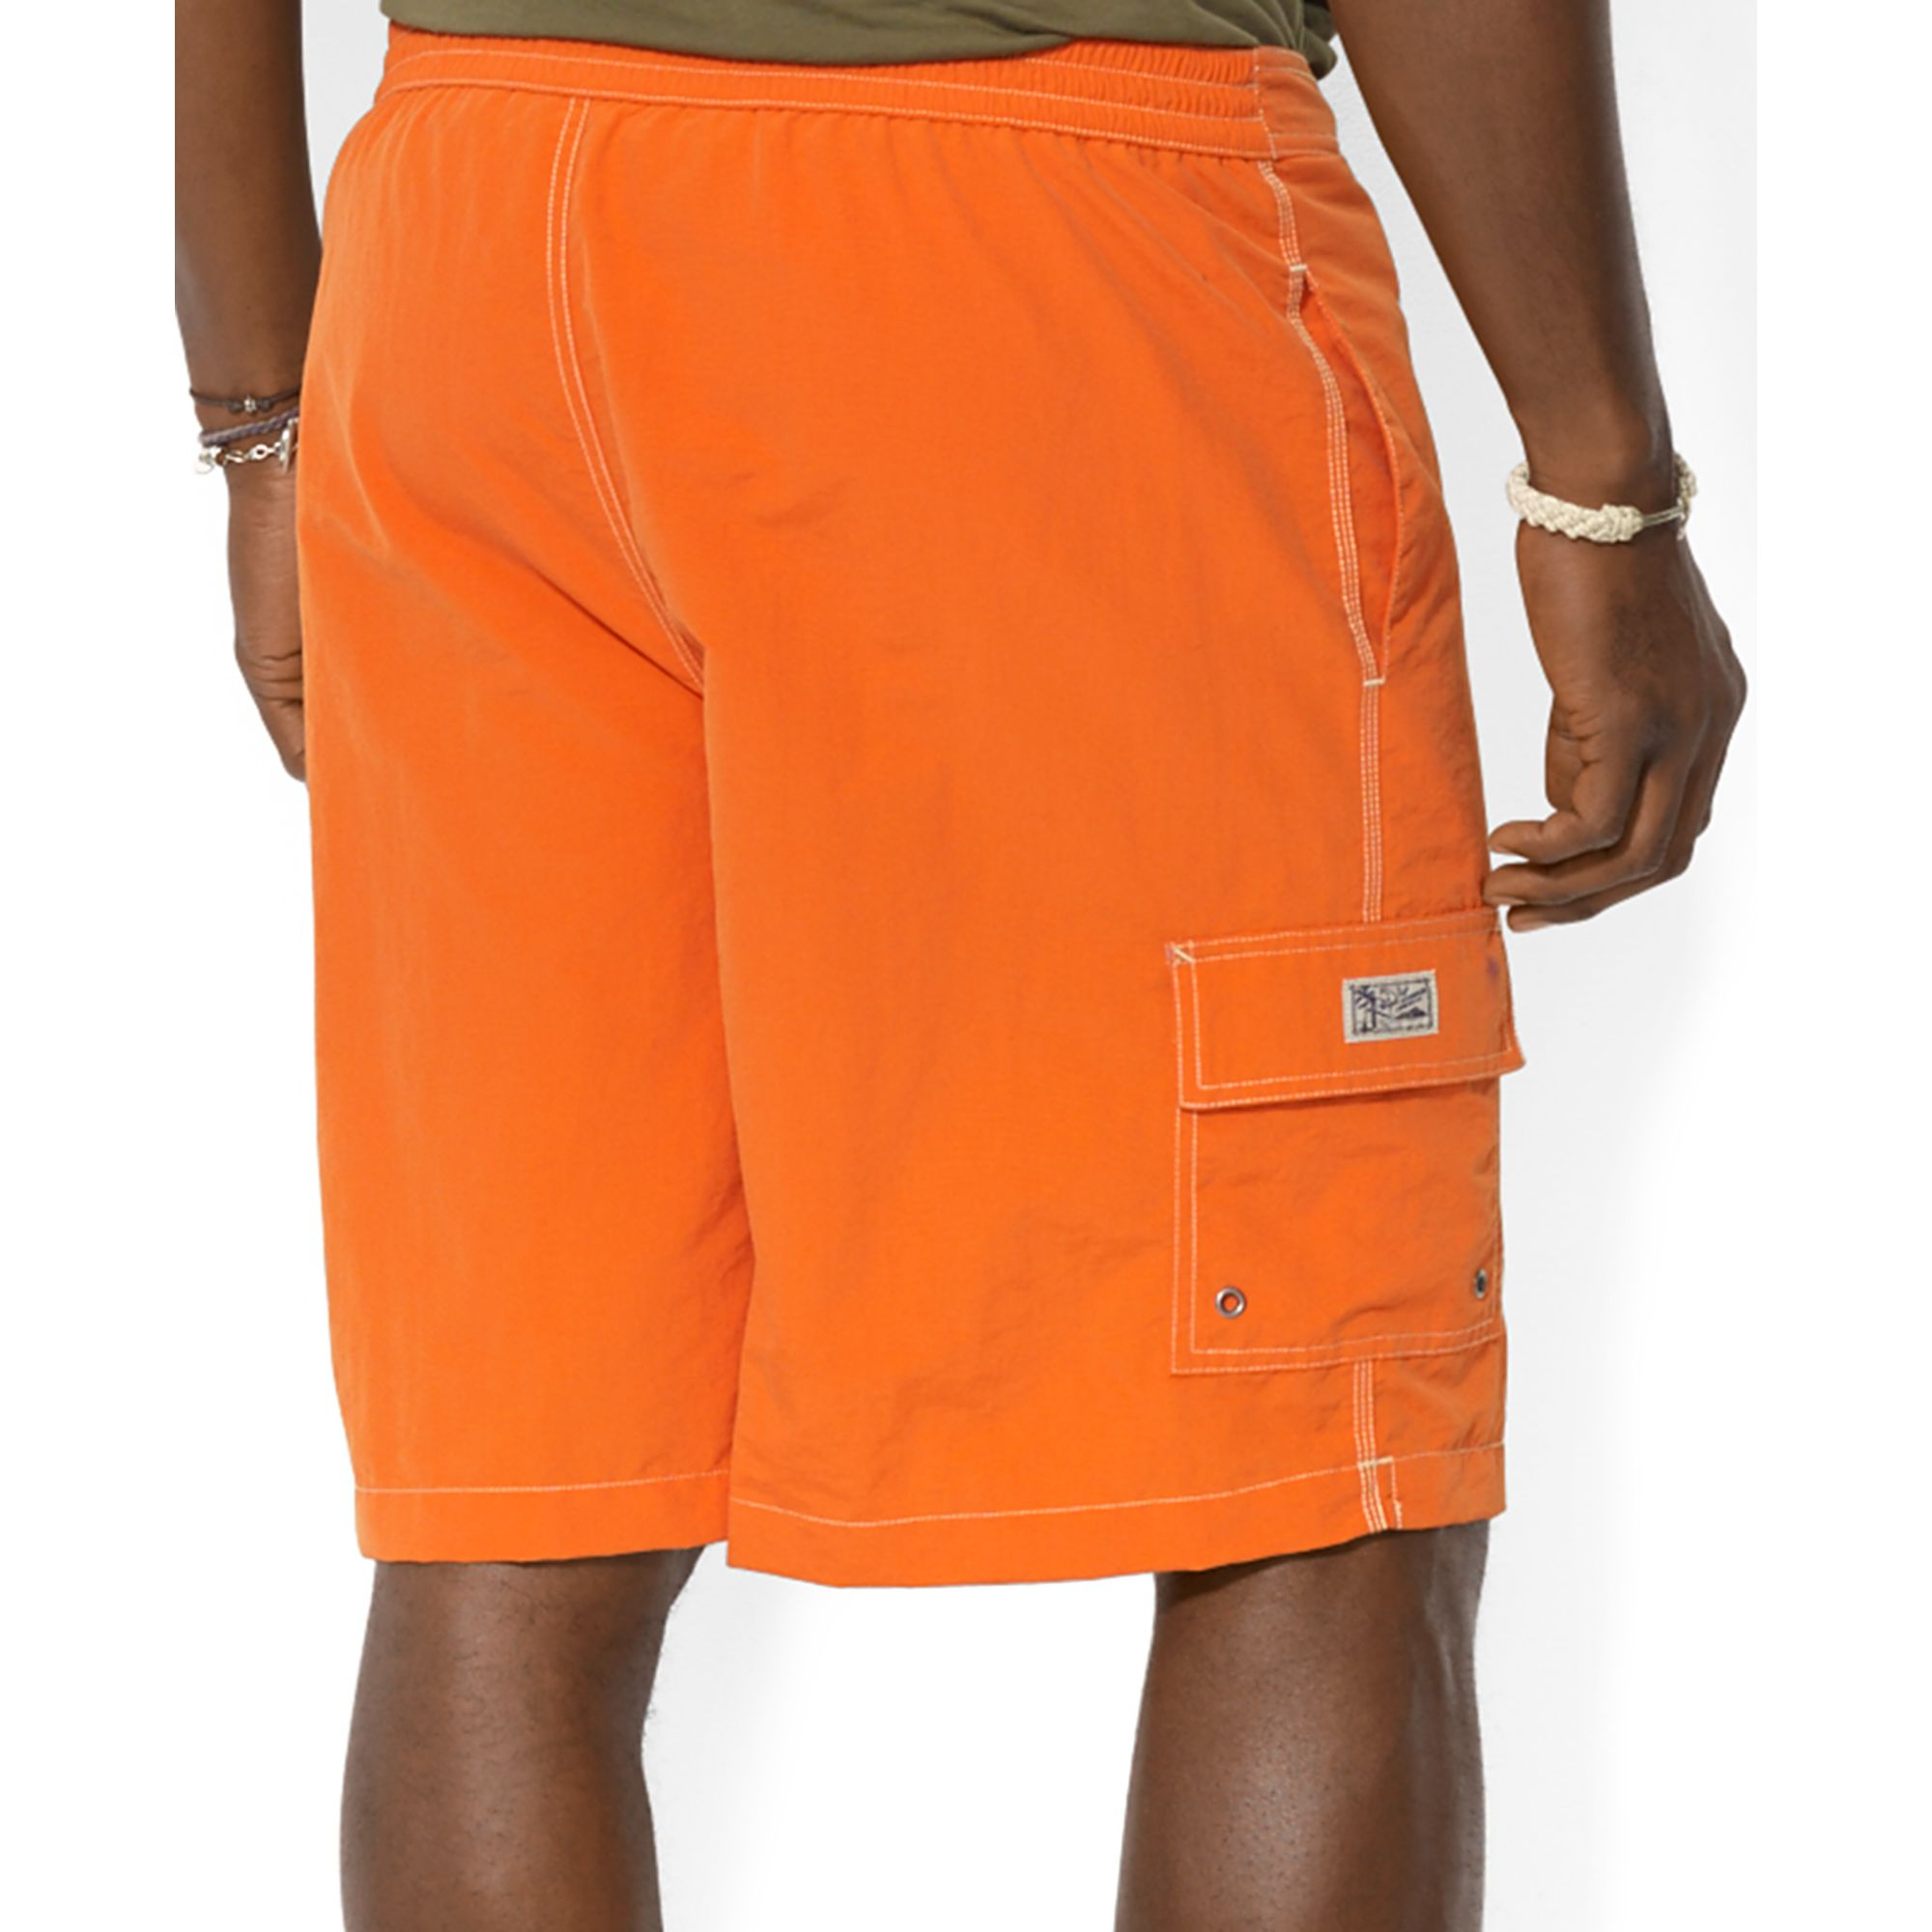 Ralph lauren polo big and tall kailua swim trunks in for Mens swim shirt big and tall